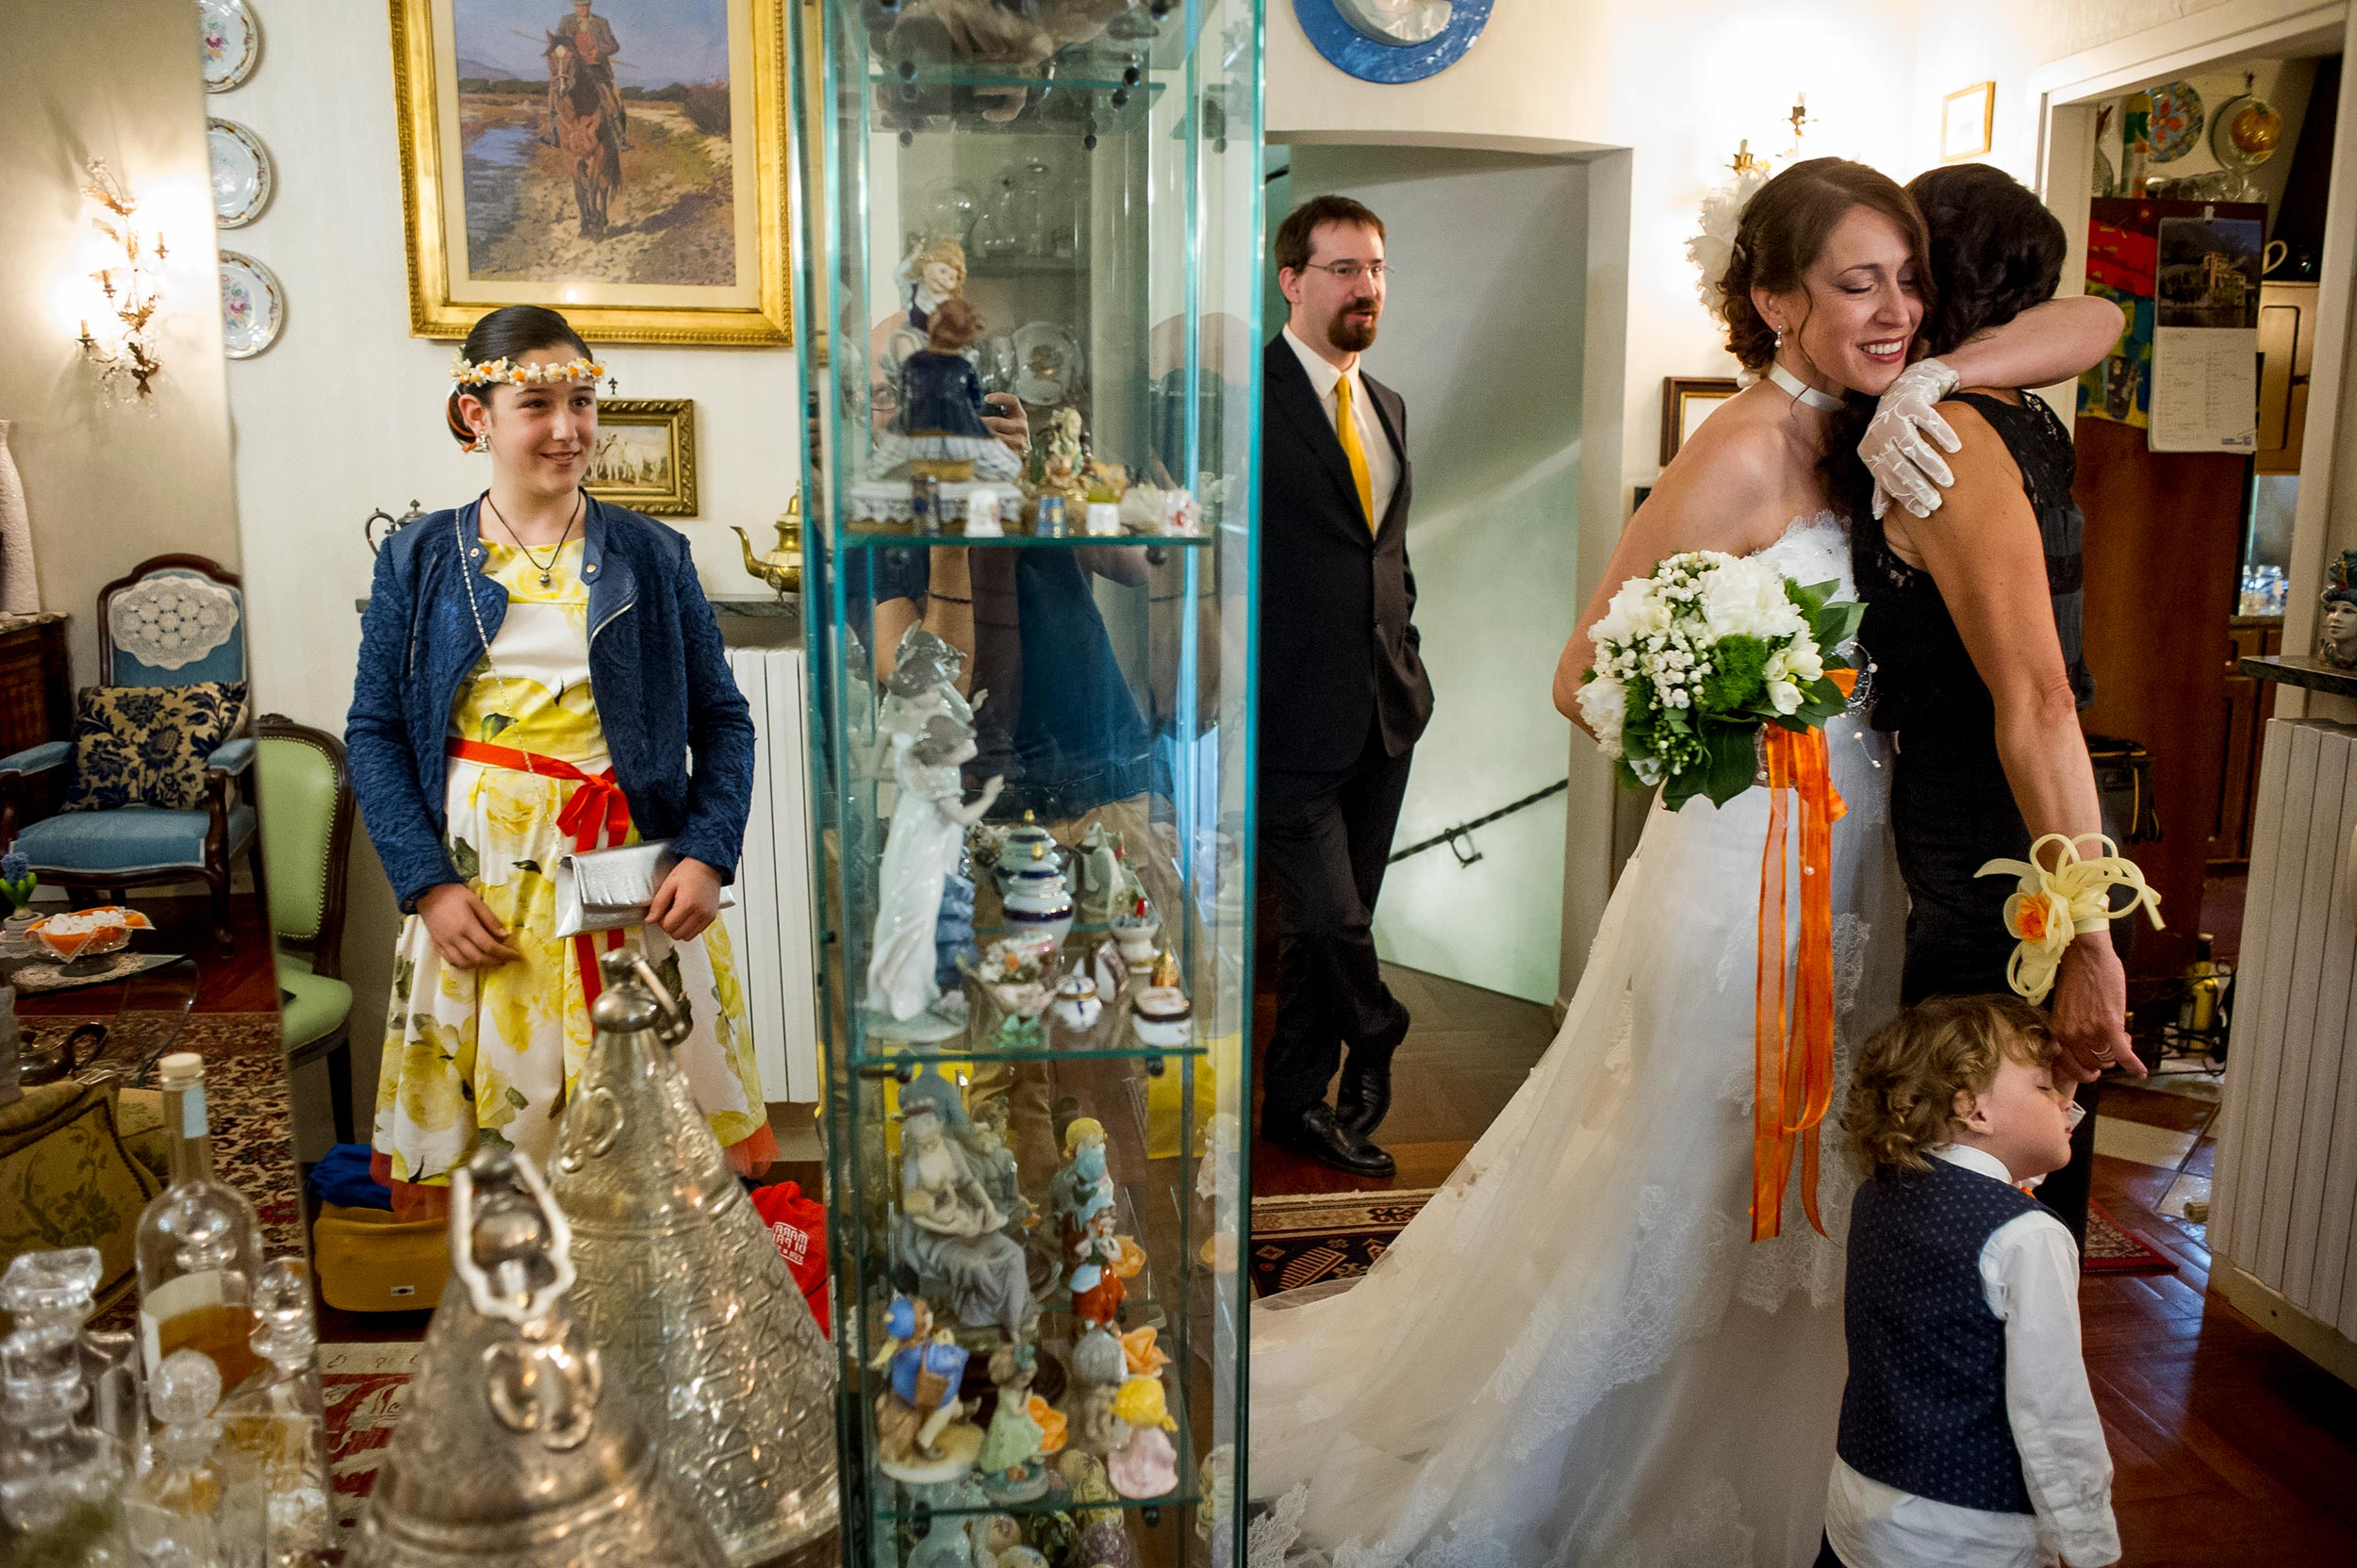 wedding-in-italy-multi-subject-composition.jpg